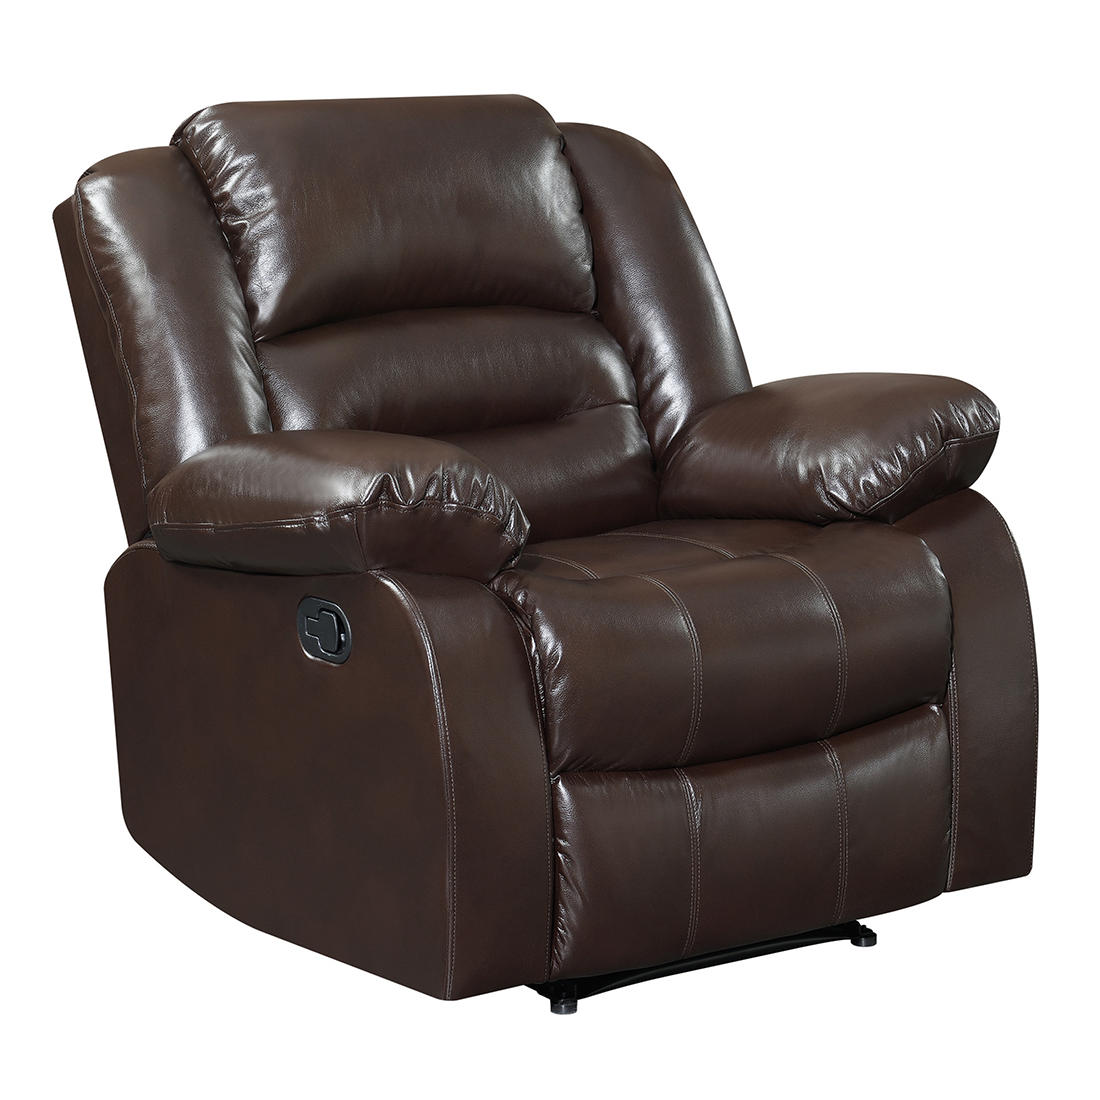 Elements Perth Big Bubba Faux Leather Manual Motion Recliner (Chocolate Brown)